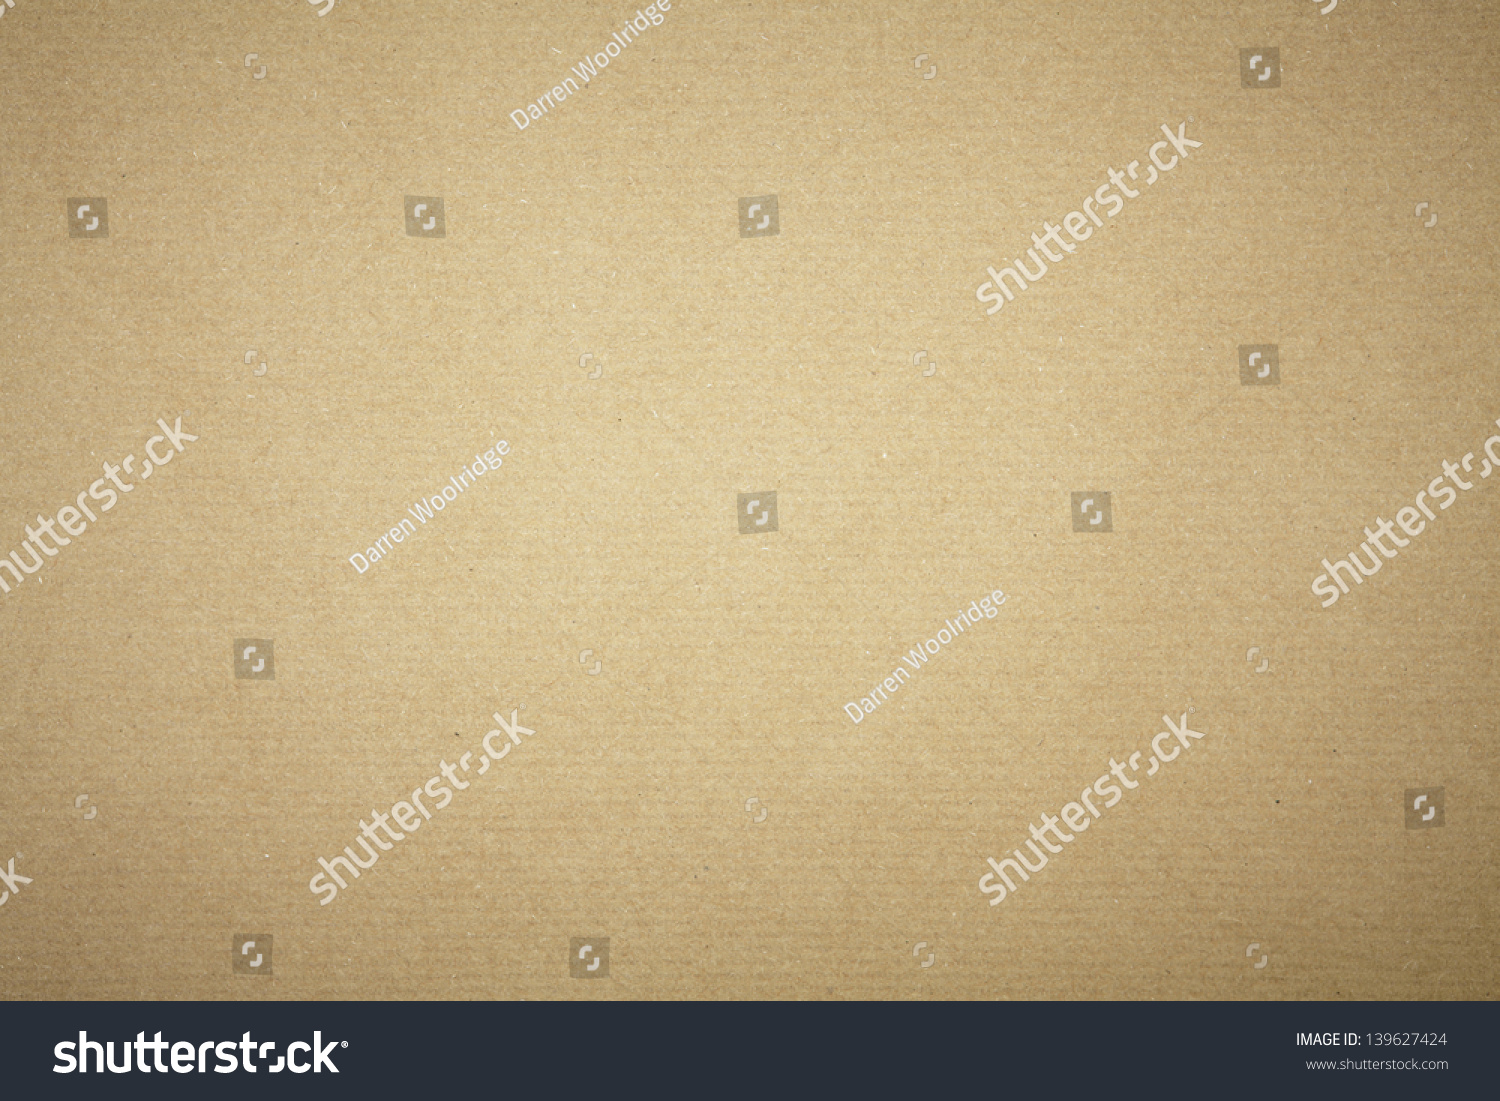 parcel paper Parcel wrapped with brown paper on a wooden table parcel packaging box wrapped with craft paper with empty label mockups on whitebackground top view copy space parcel packaging box wrapped with craft paper with parcel packaging box wrapped with craft paper with empty label mockups on whitebackground top view copy space.